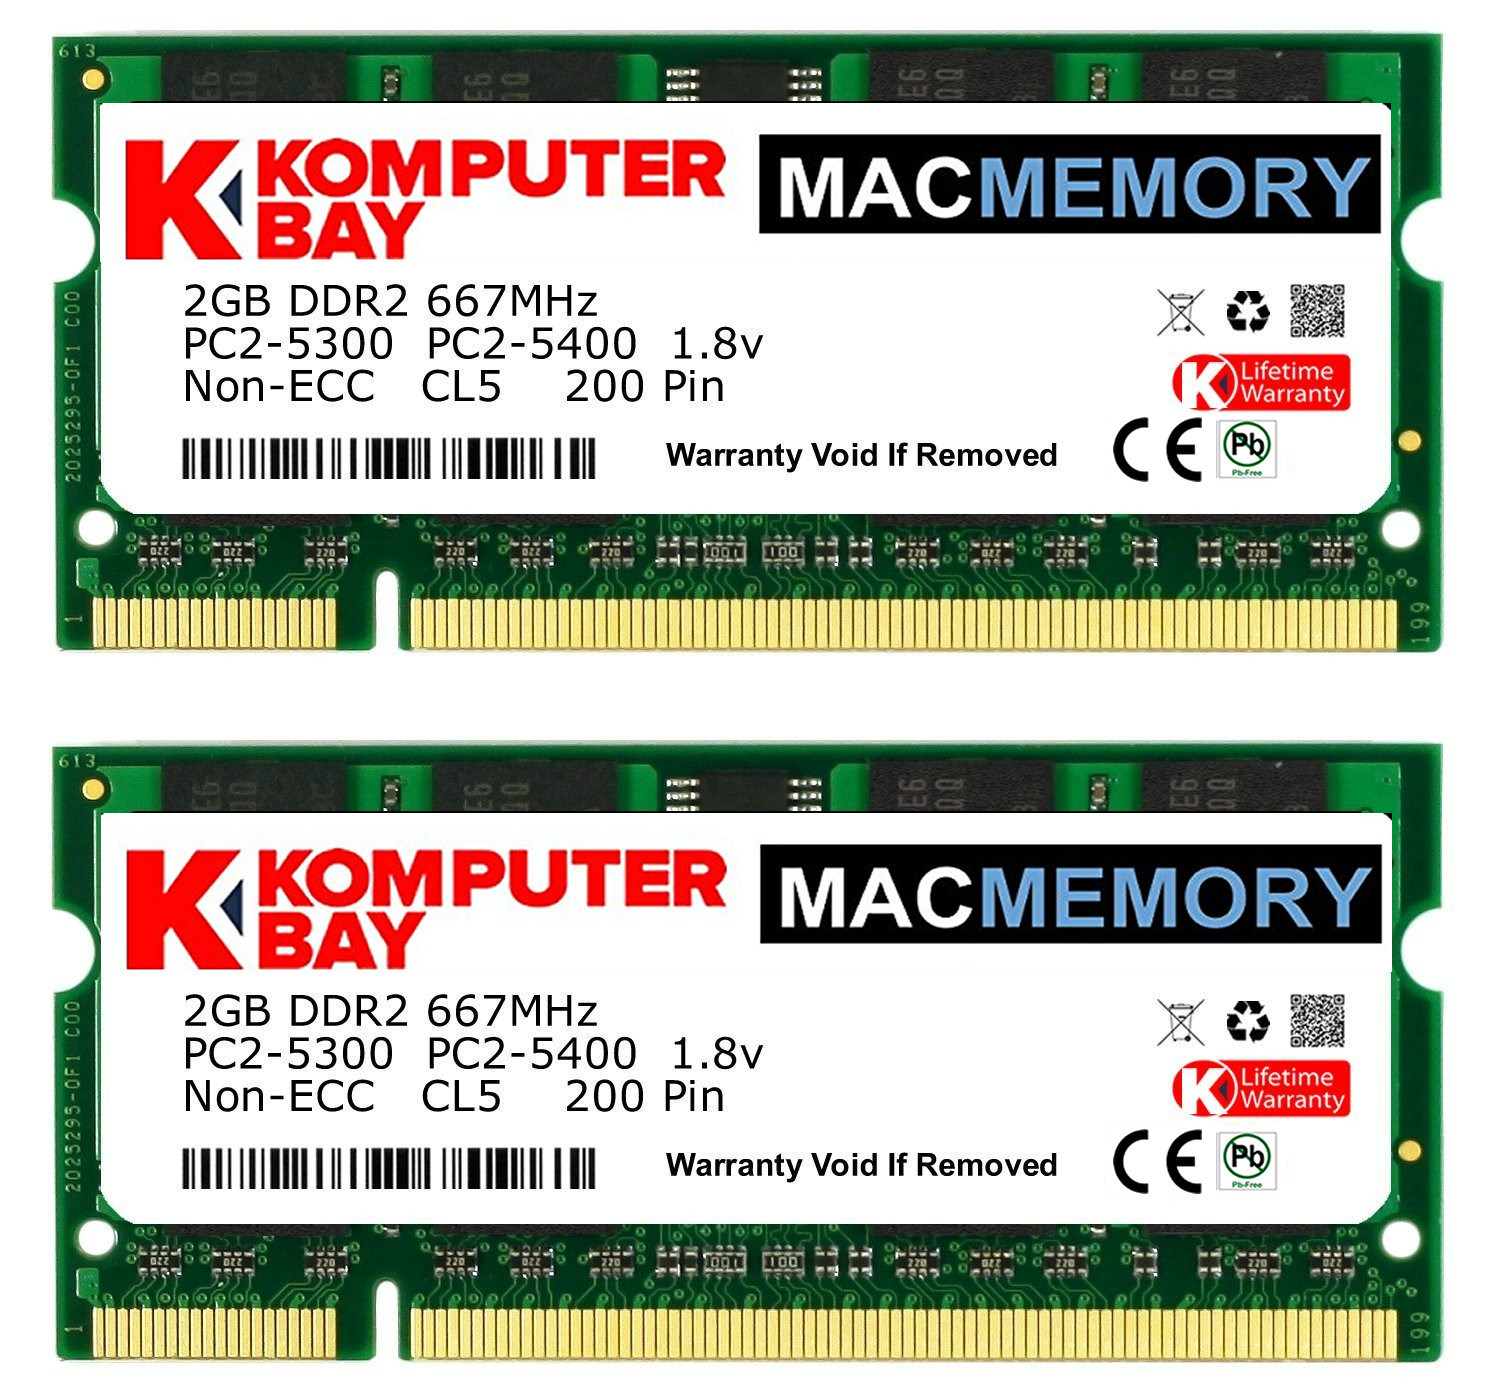 Komputerbay Macmemory Apple 4gb Kit 2x 2gb Pc2 5300 667mhz Ddr2 Ram Laptop 6400 Asli Jepang Close